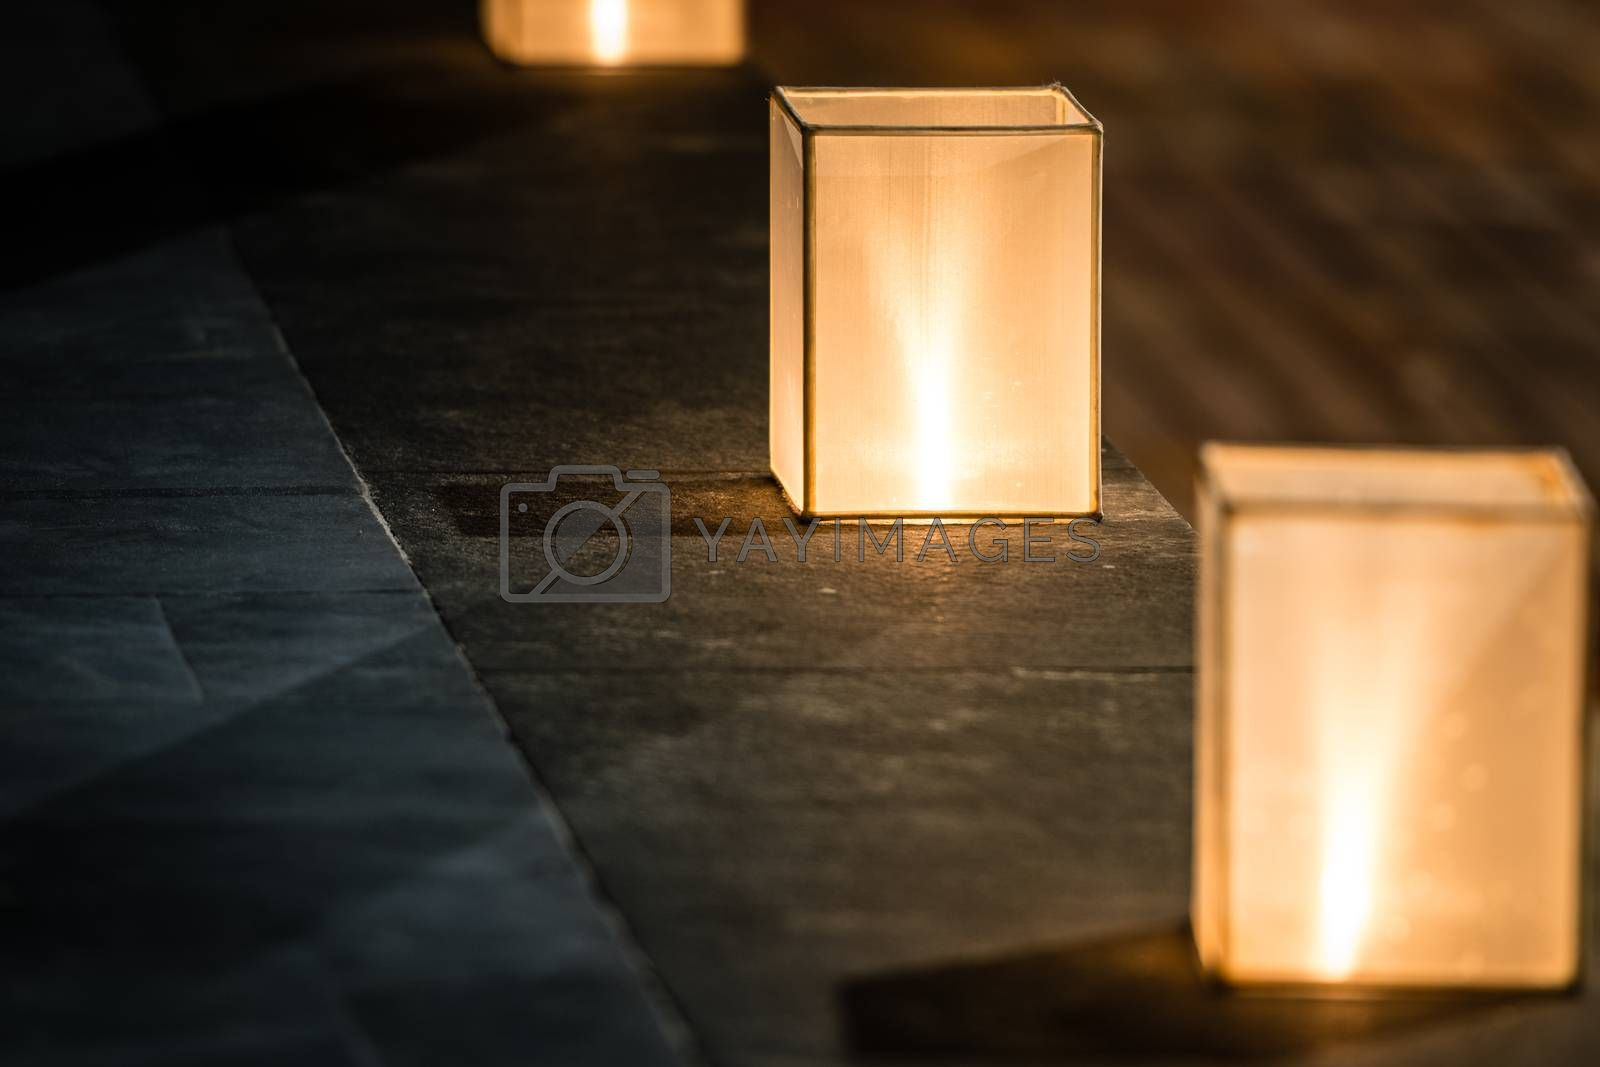 Row of three square lanterns with dim light standing on stone floor. Focus on central lantern. Street decoration and lighting. Warm and romantic atmosphere of evening.